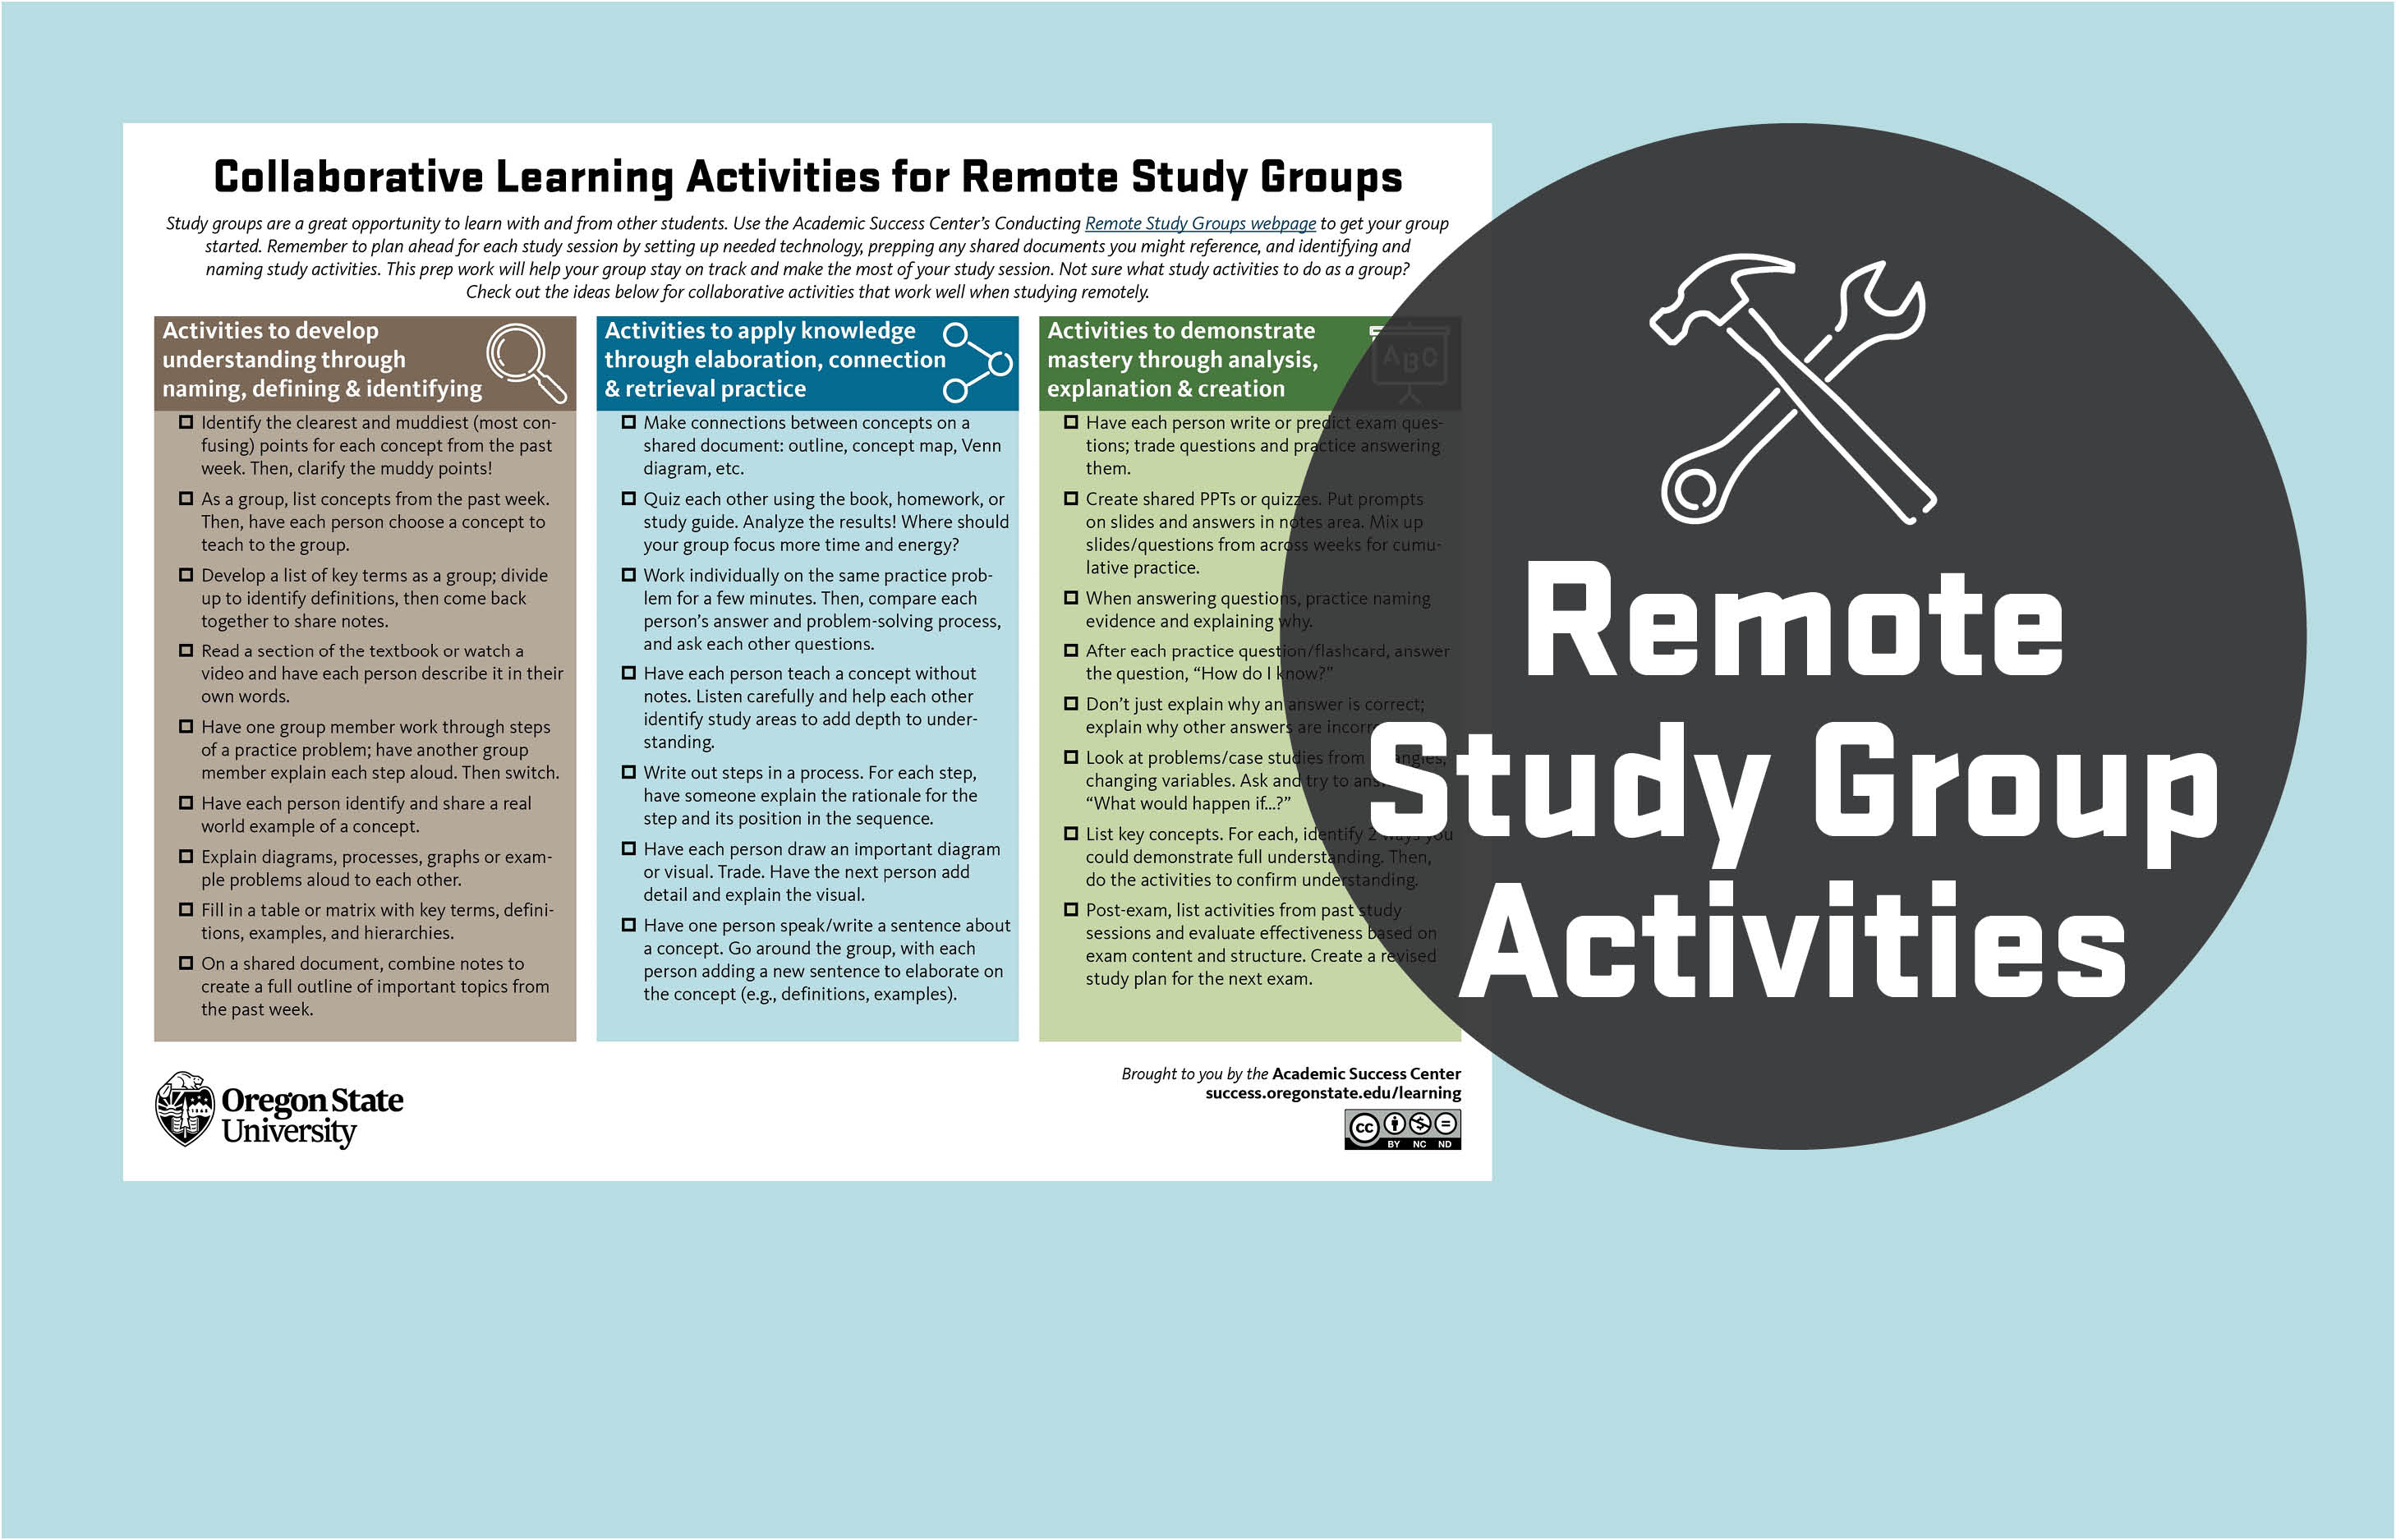 Remote Study Group Activities